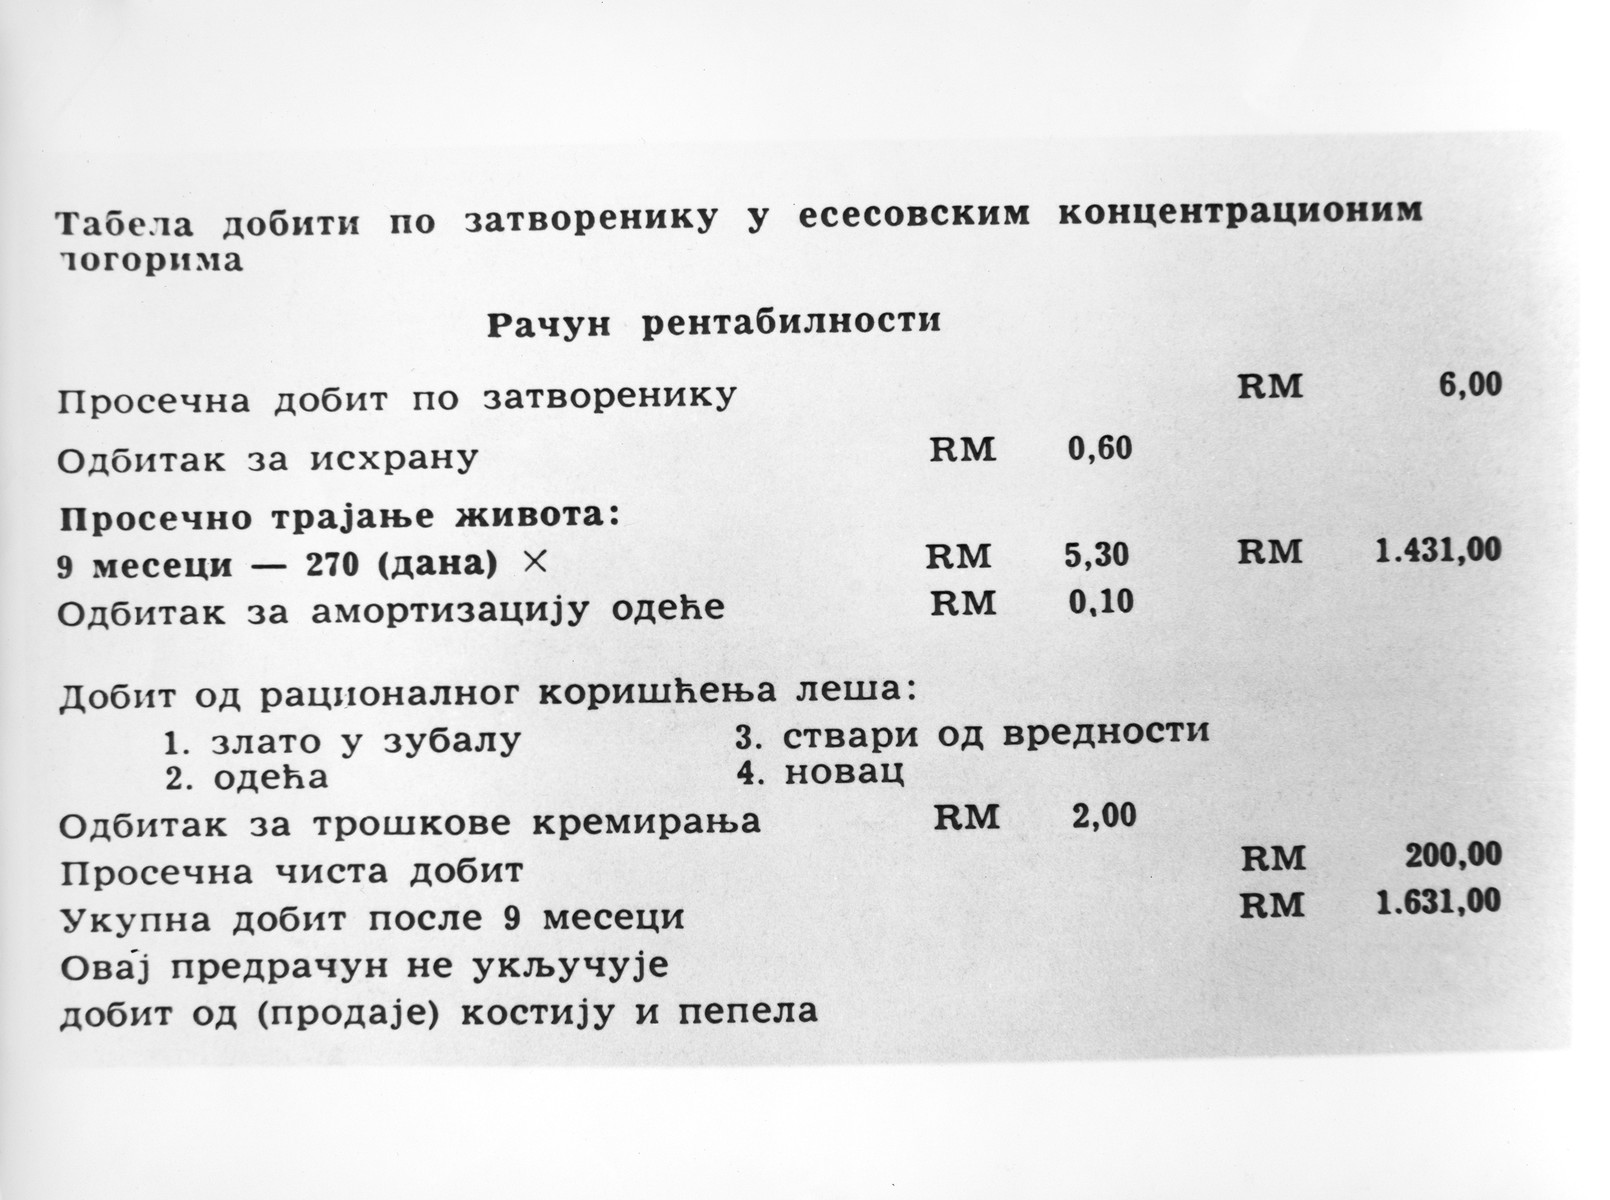 """Table estimating the cost and value of SS concentration camp inmates.  The table includes the following categories:  (1) approximate worth of each inmate:  6 RM;  (2) cost of food:  .60 RM;  (3) approximate life expectancy (9 months or 270 days):      5.30 RM/ 1,431 RM;                (4) cost of clothing:  .10 RM;  (5) value of the prisoners' corpses:       (a) gold and teeth;       (b) clothing;       (c) valuables;       (d) money (6) Cost of cremation:  2 RM (7) Recurring value:  200 RM (8) Total value after 9 months:  1,631 RM The table concludes with the note: """"This estimate does not include value from the sale of bones and dust."""""""